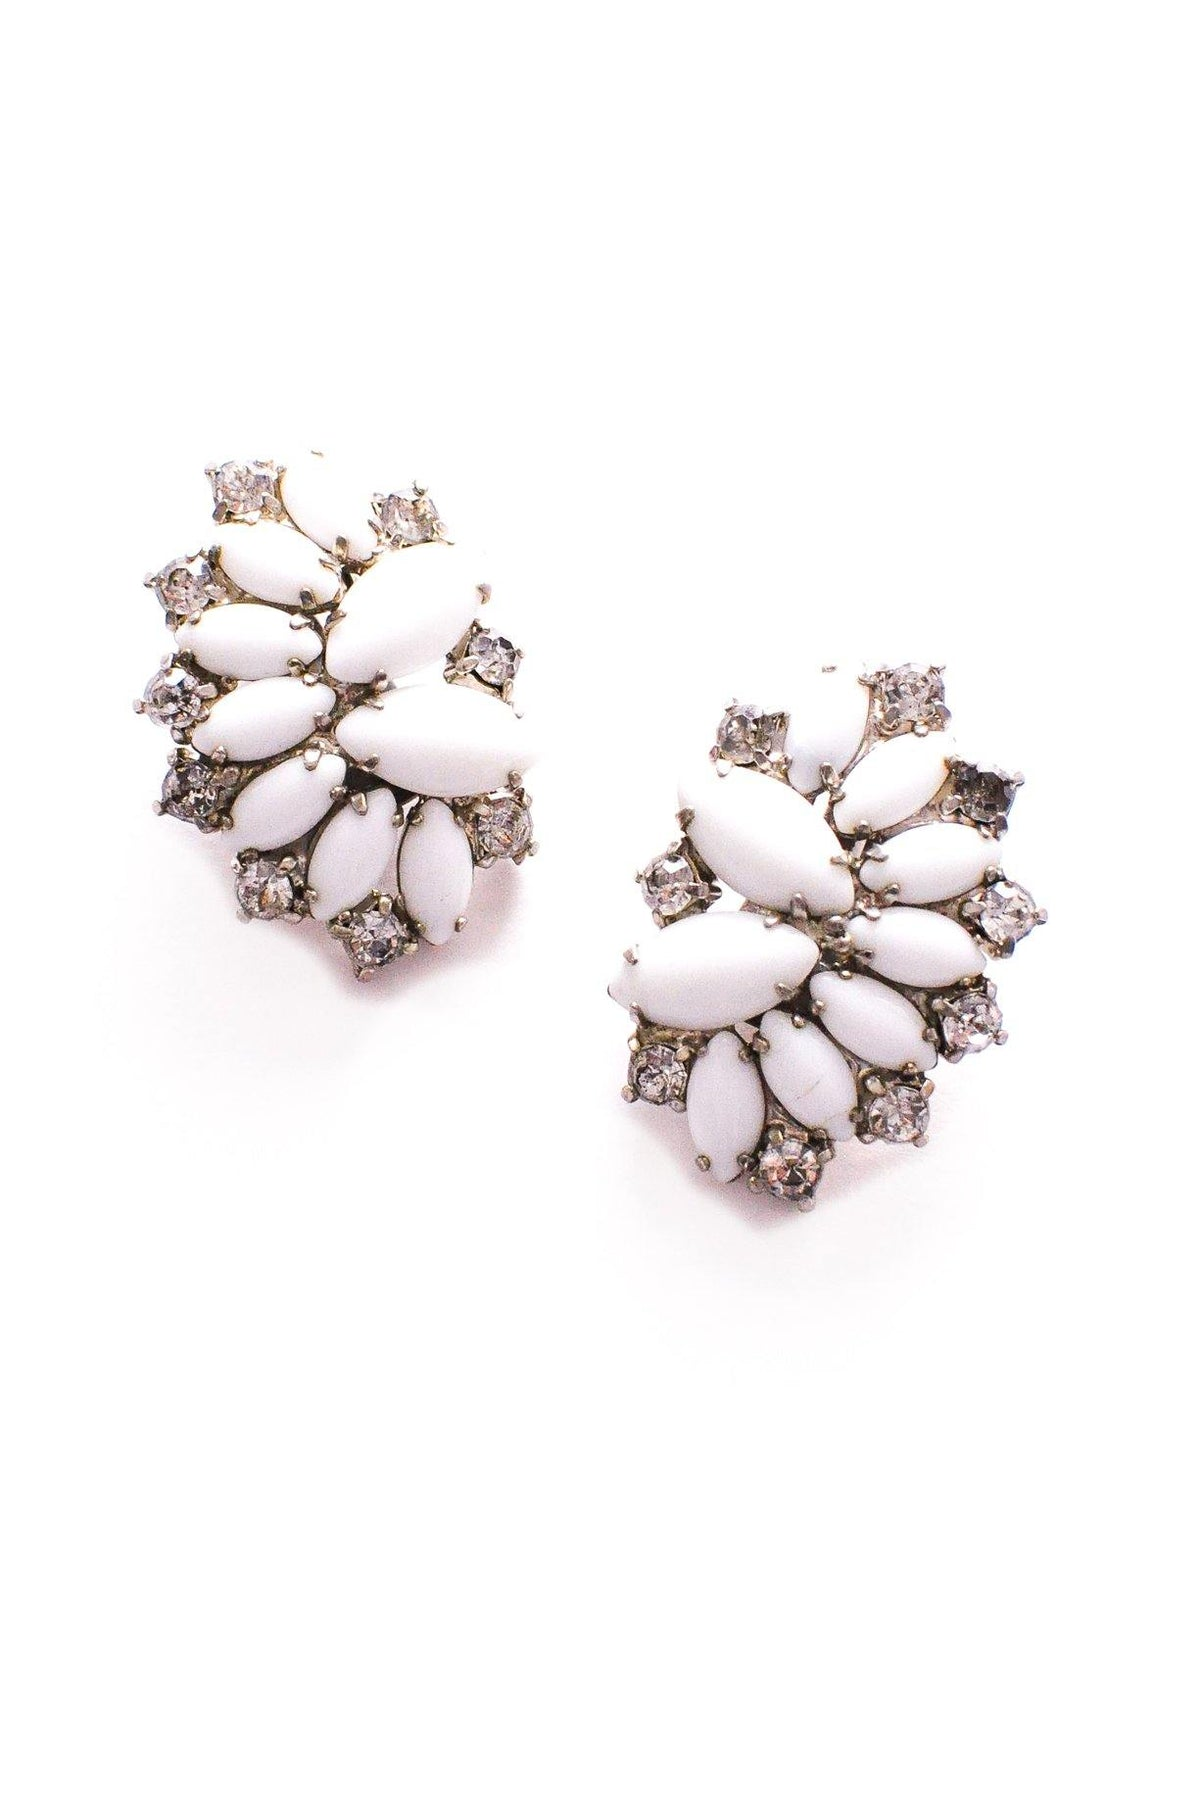 Vintage white milk glass crawler earrings from Sweet & Spark.